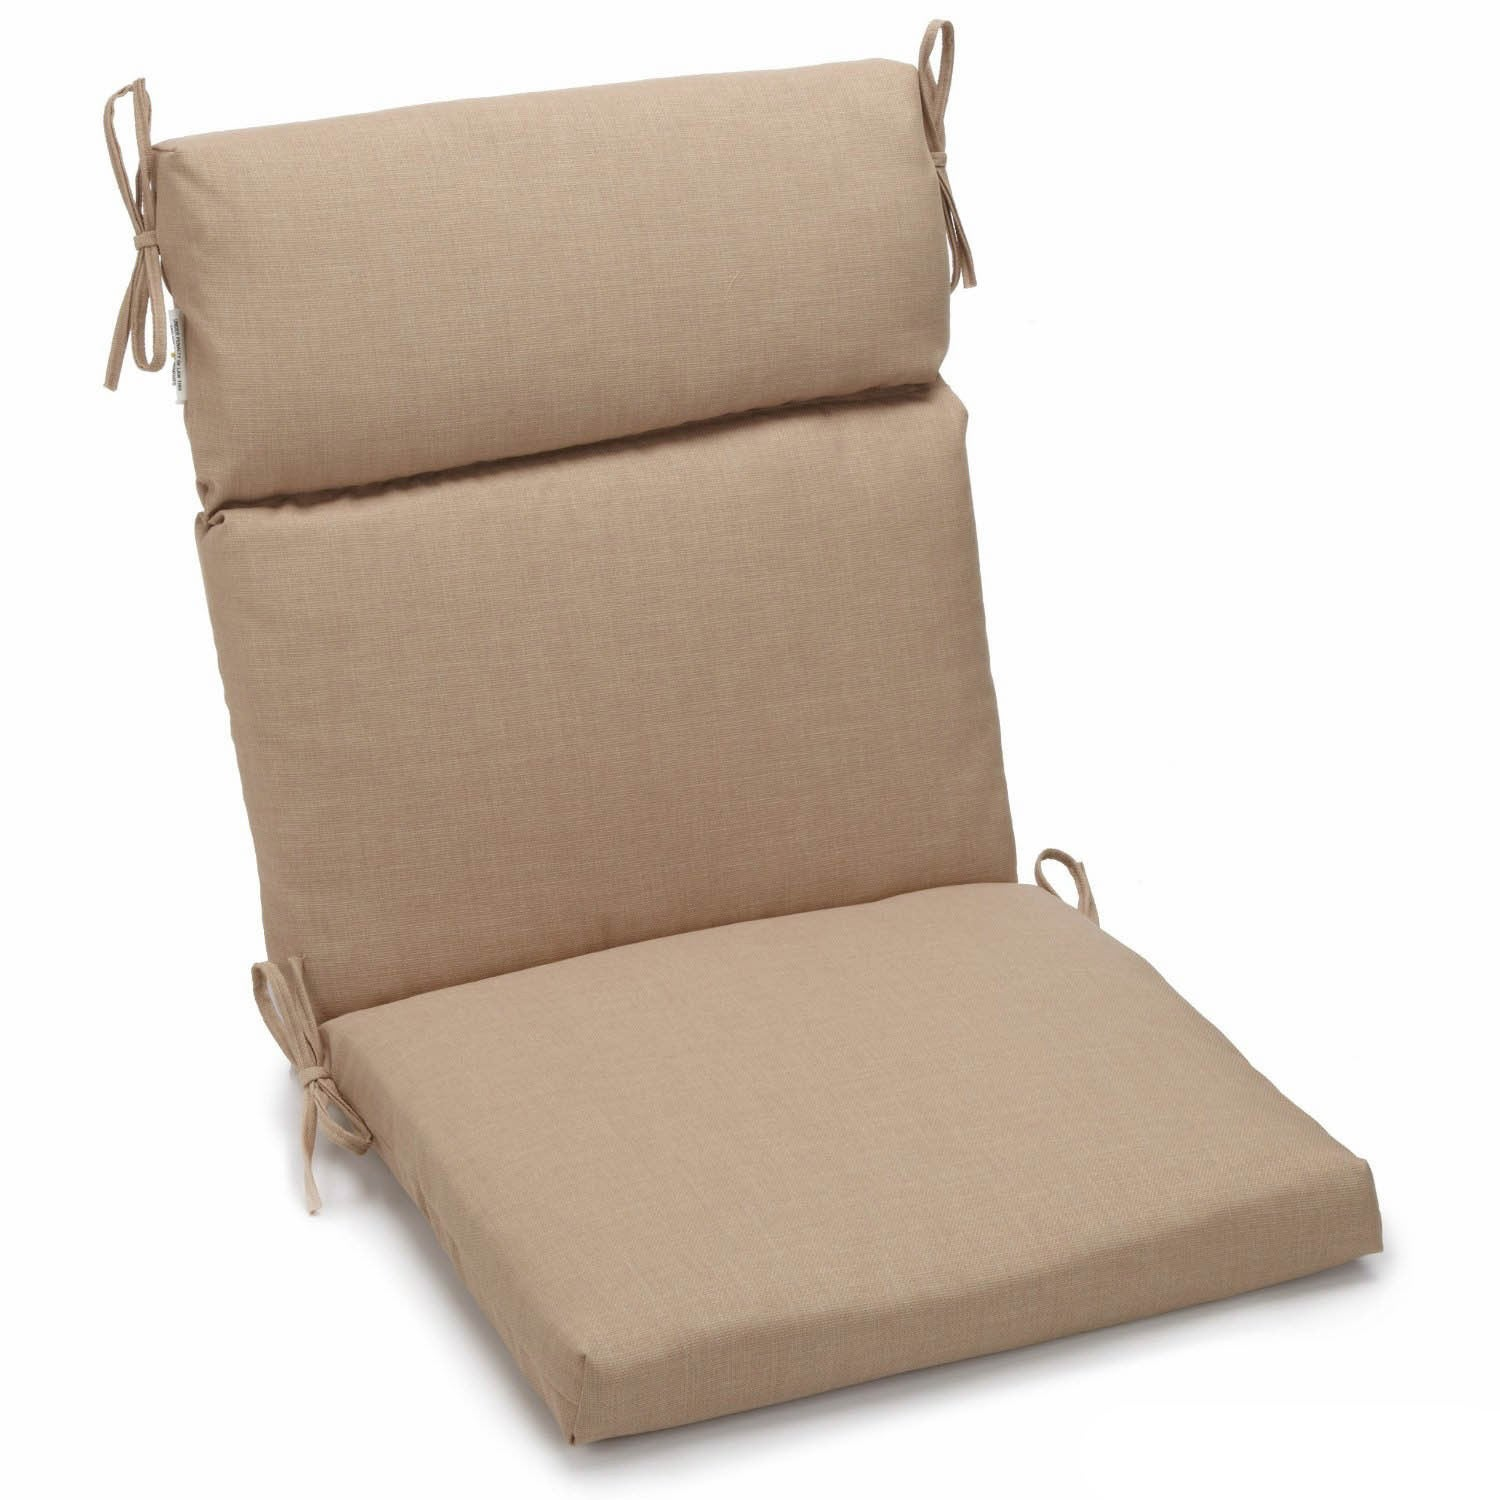 Blazing Needles Seat And Back Outdoor Chair Cushion   Free Shipping Today    Overstock   15065685